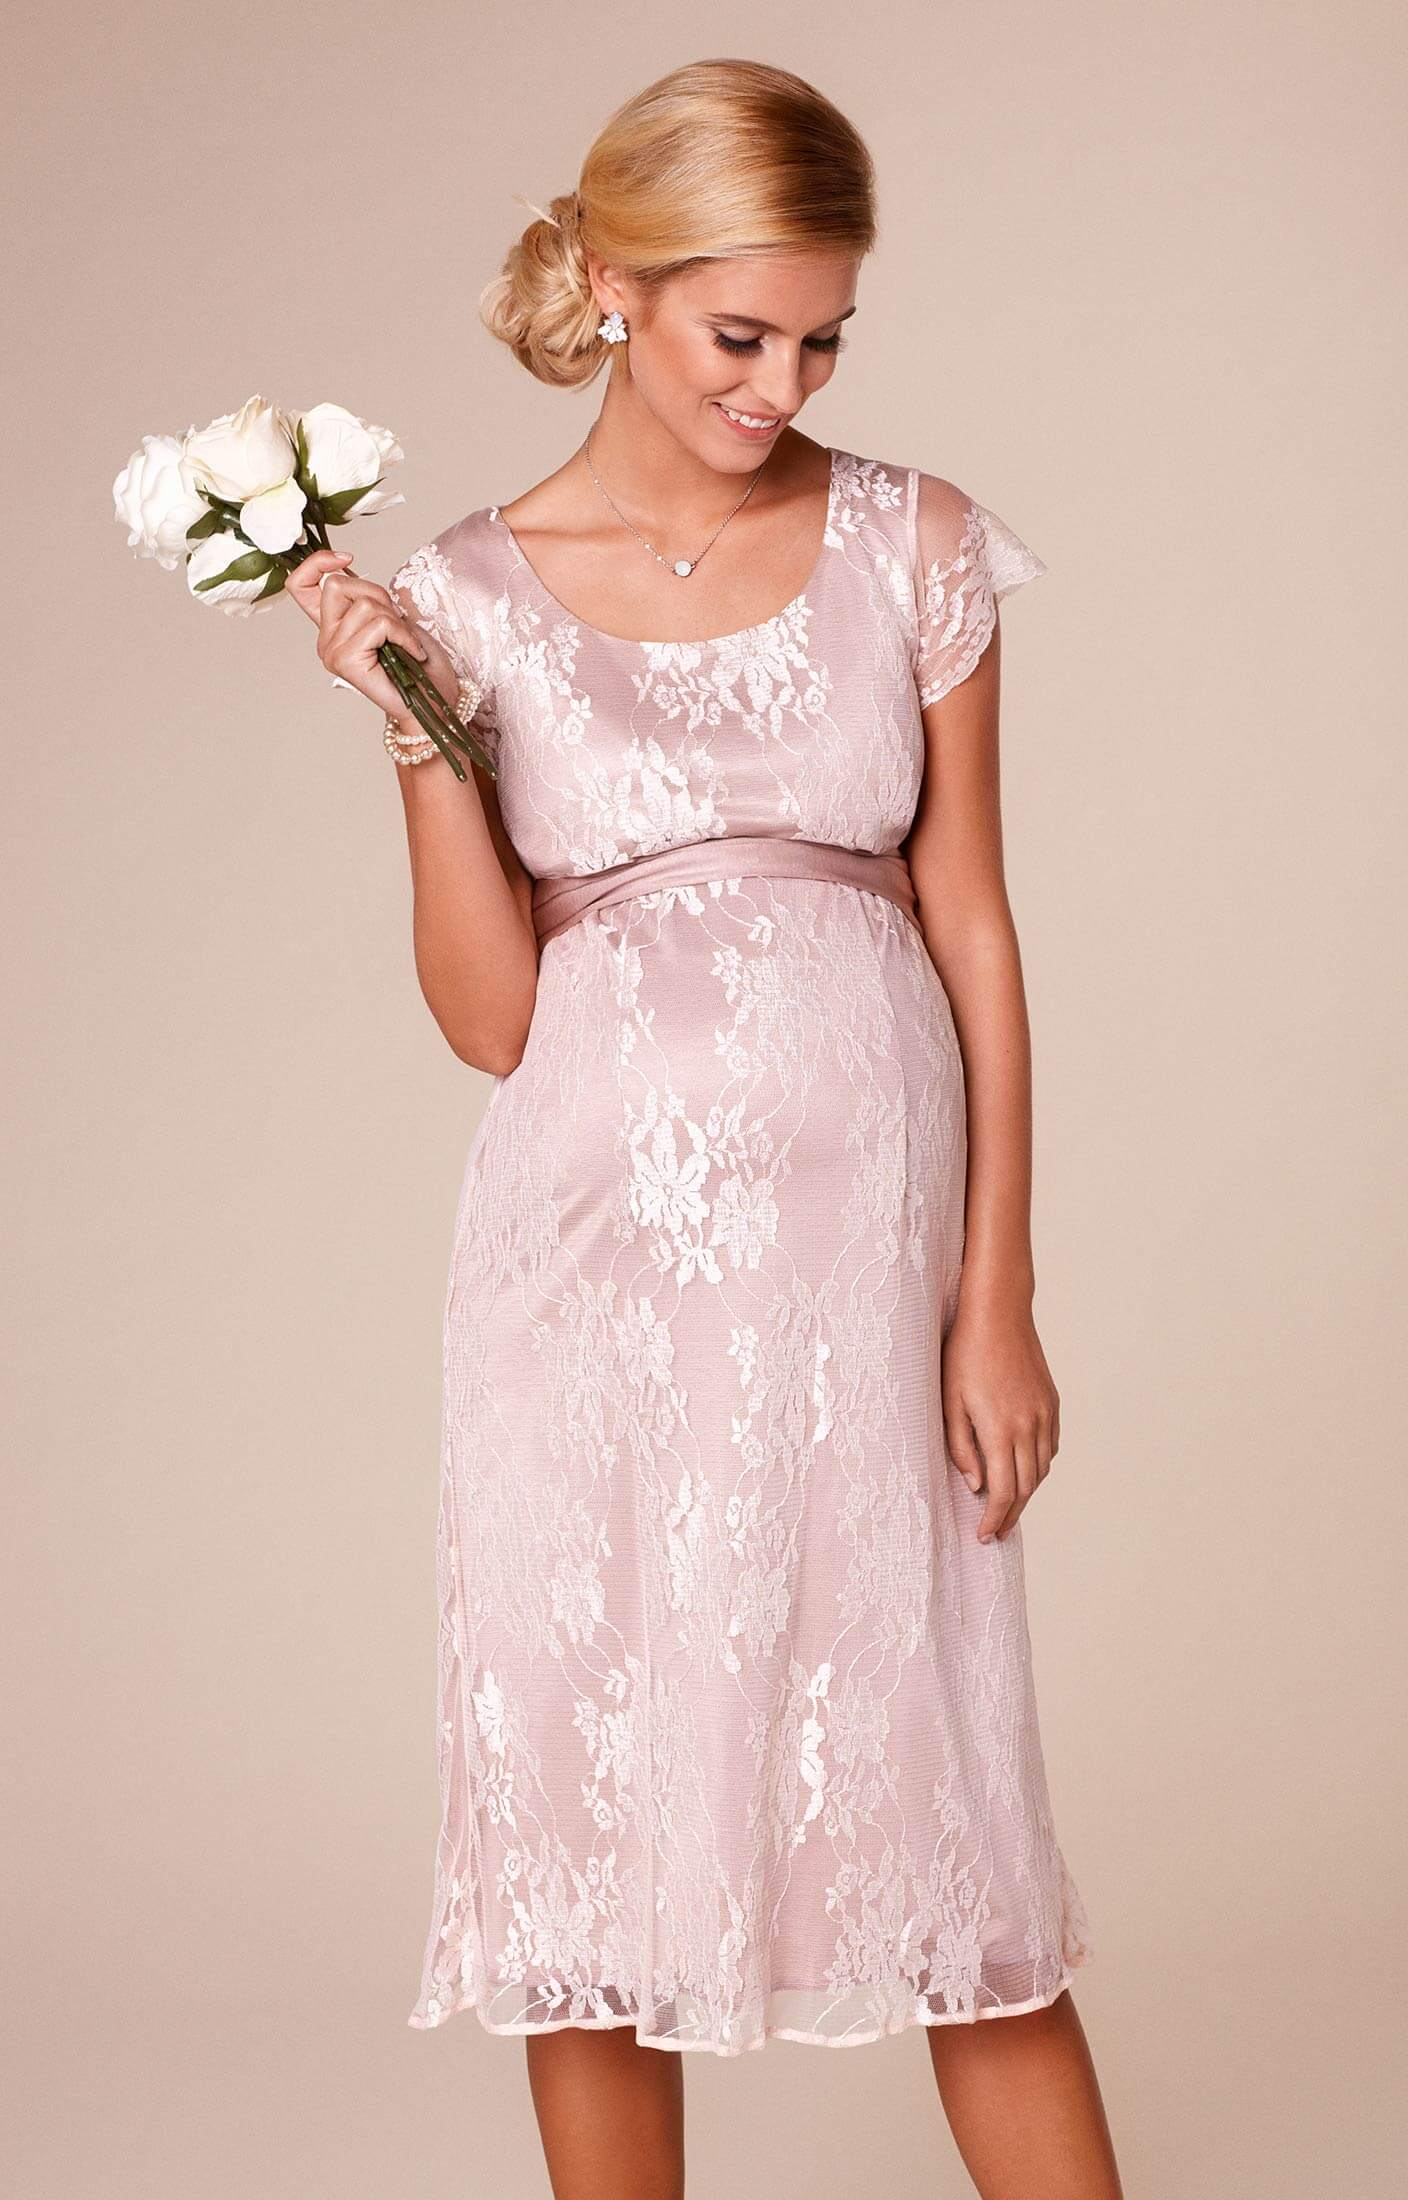 April Nursing Lace Dress Blush  Maternity Wedding Dresses Evening Wear and Party Clothes by